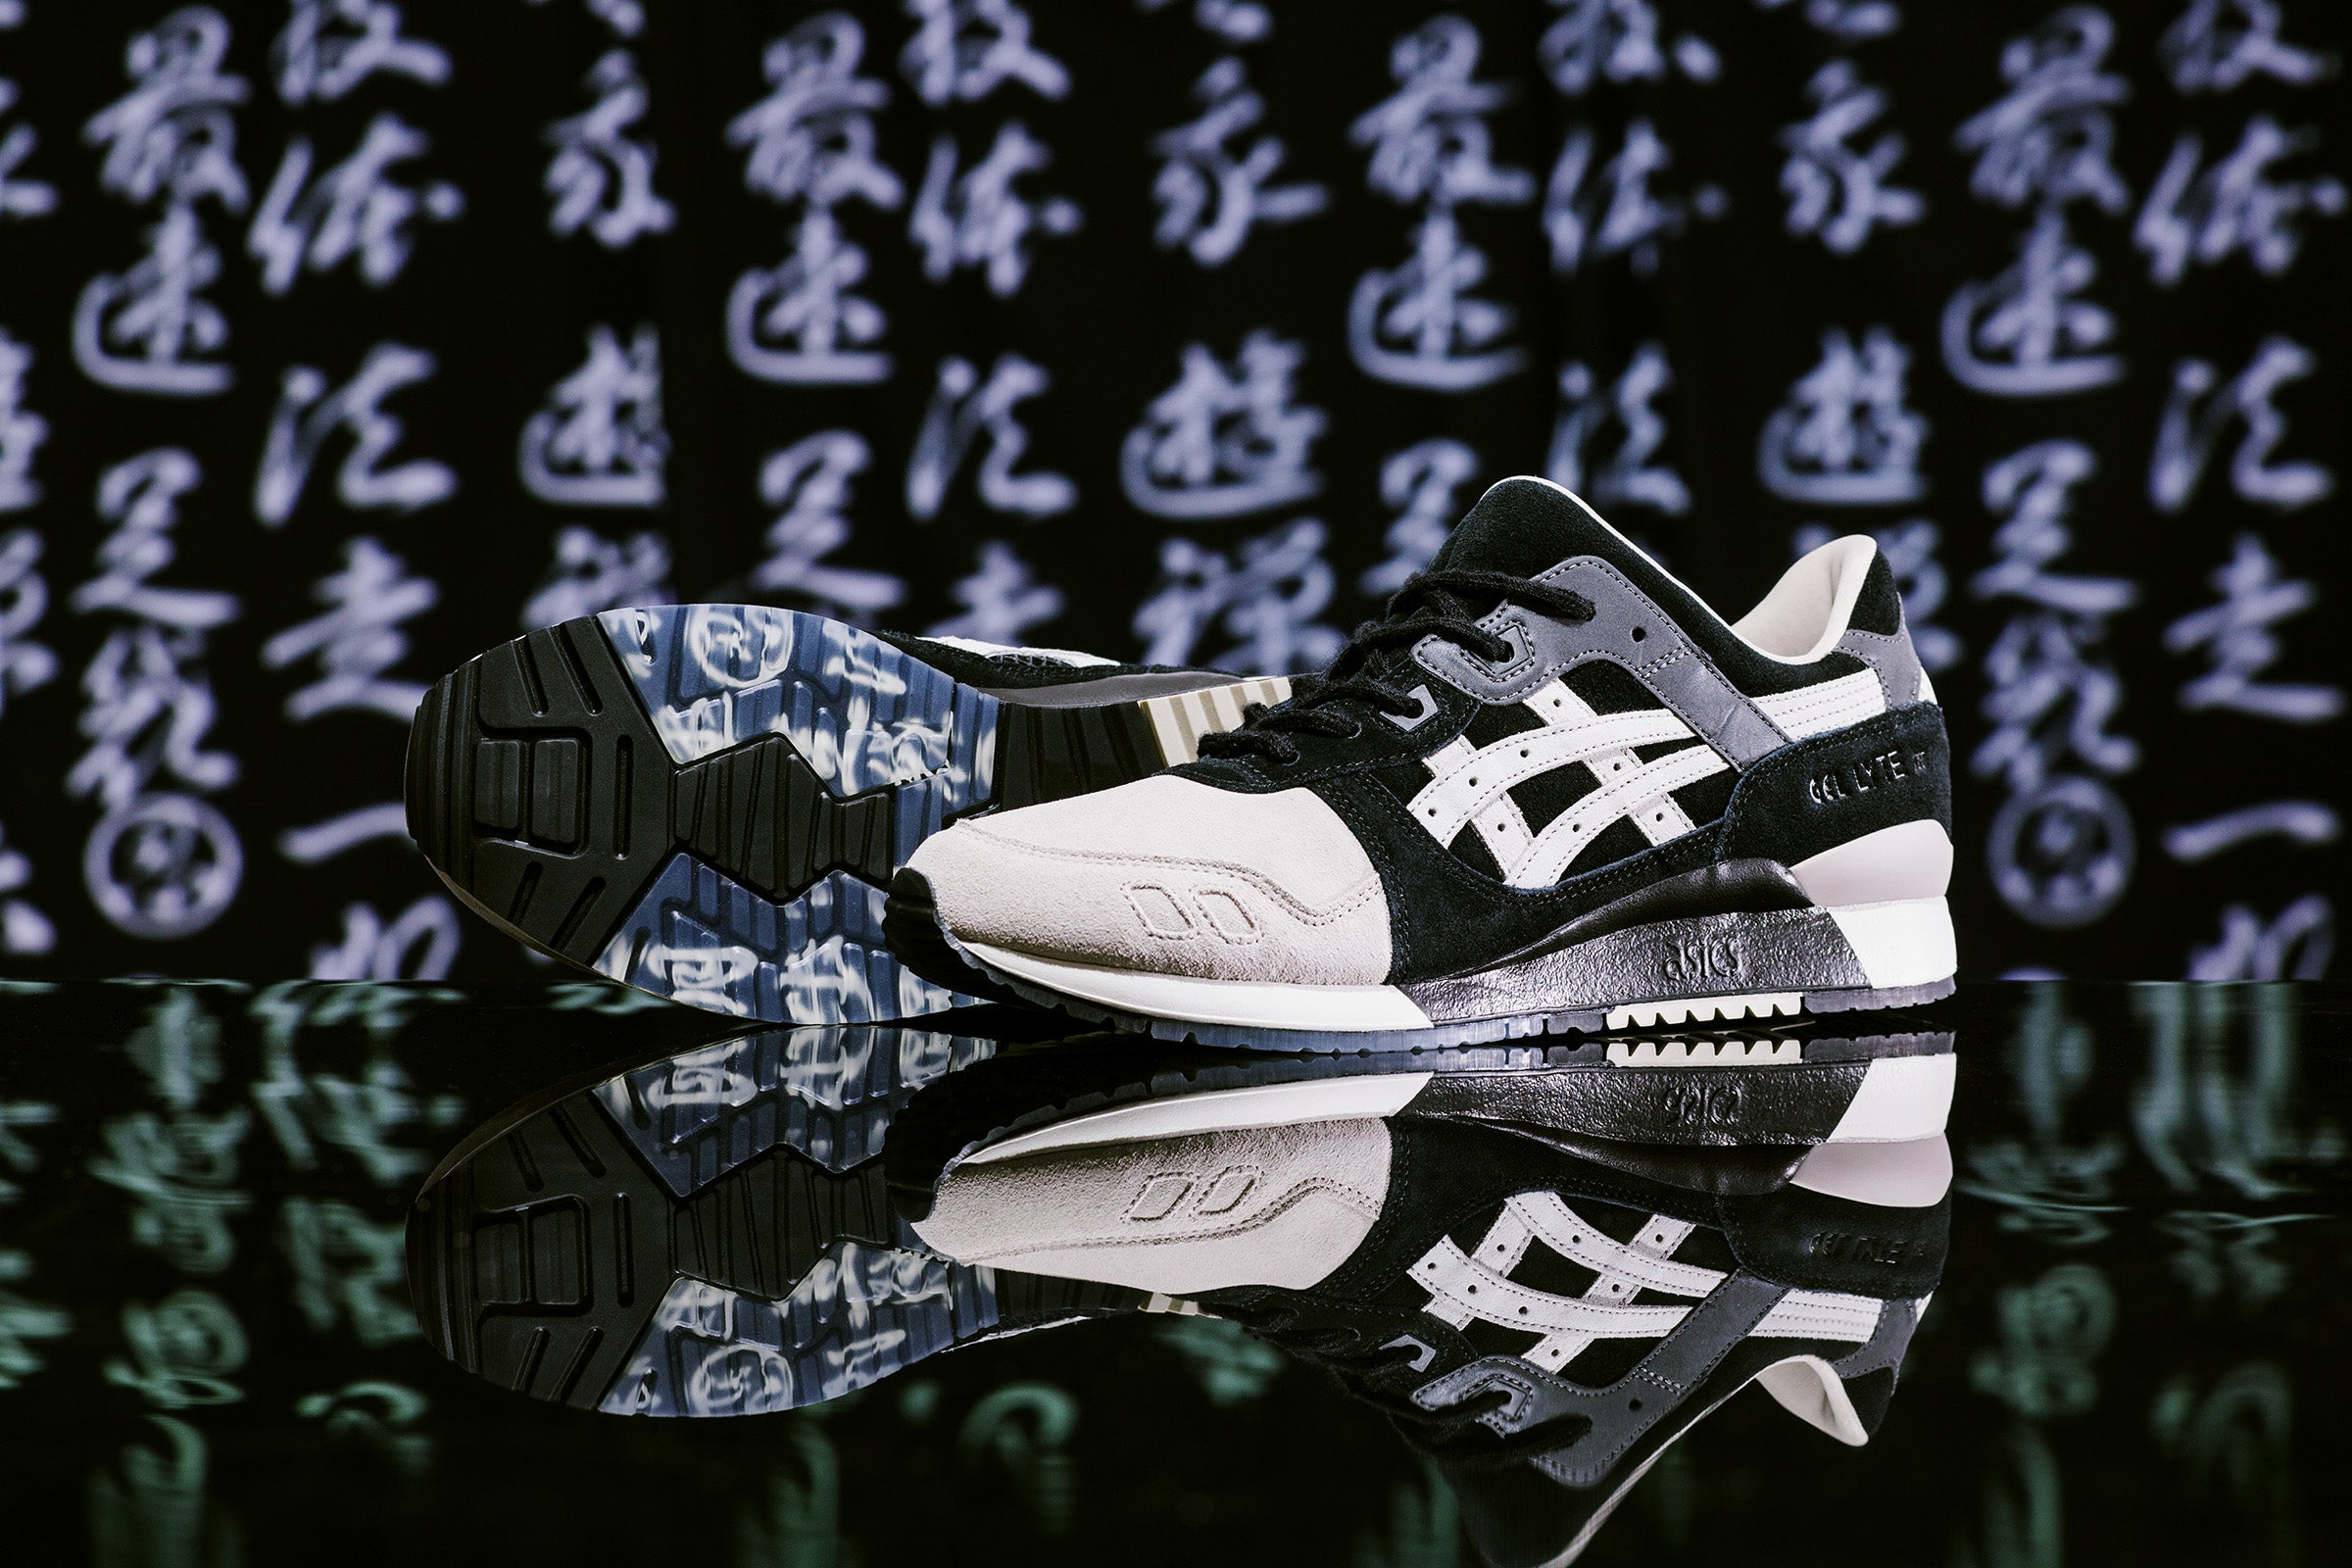 wholesale dealer 62f0a bb80f ASICSTIGER x KICKS LAB GEL-LYTE lll  KLSHINOBI  – Hanon